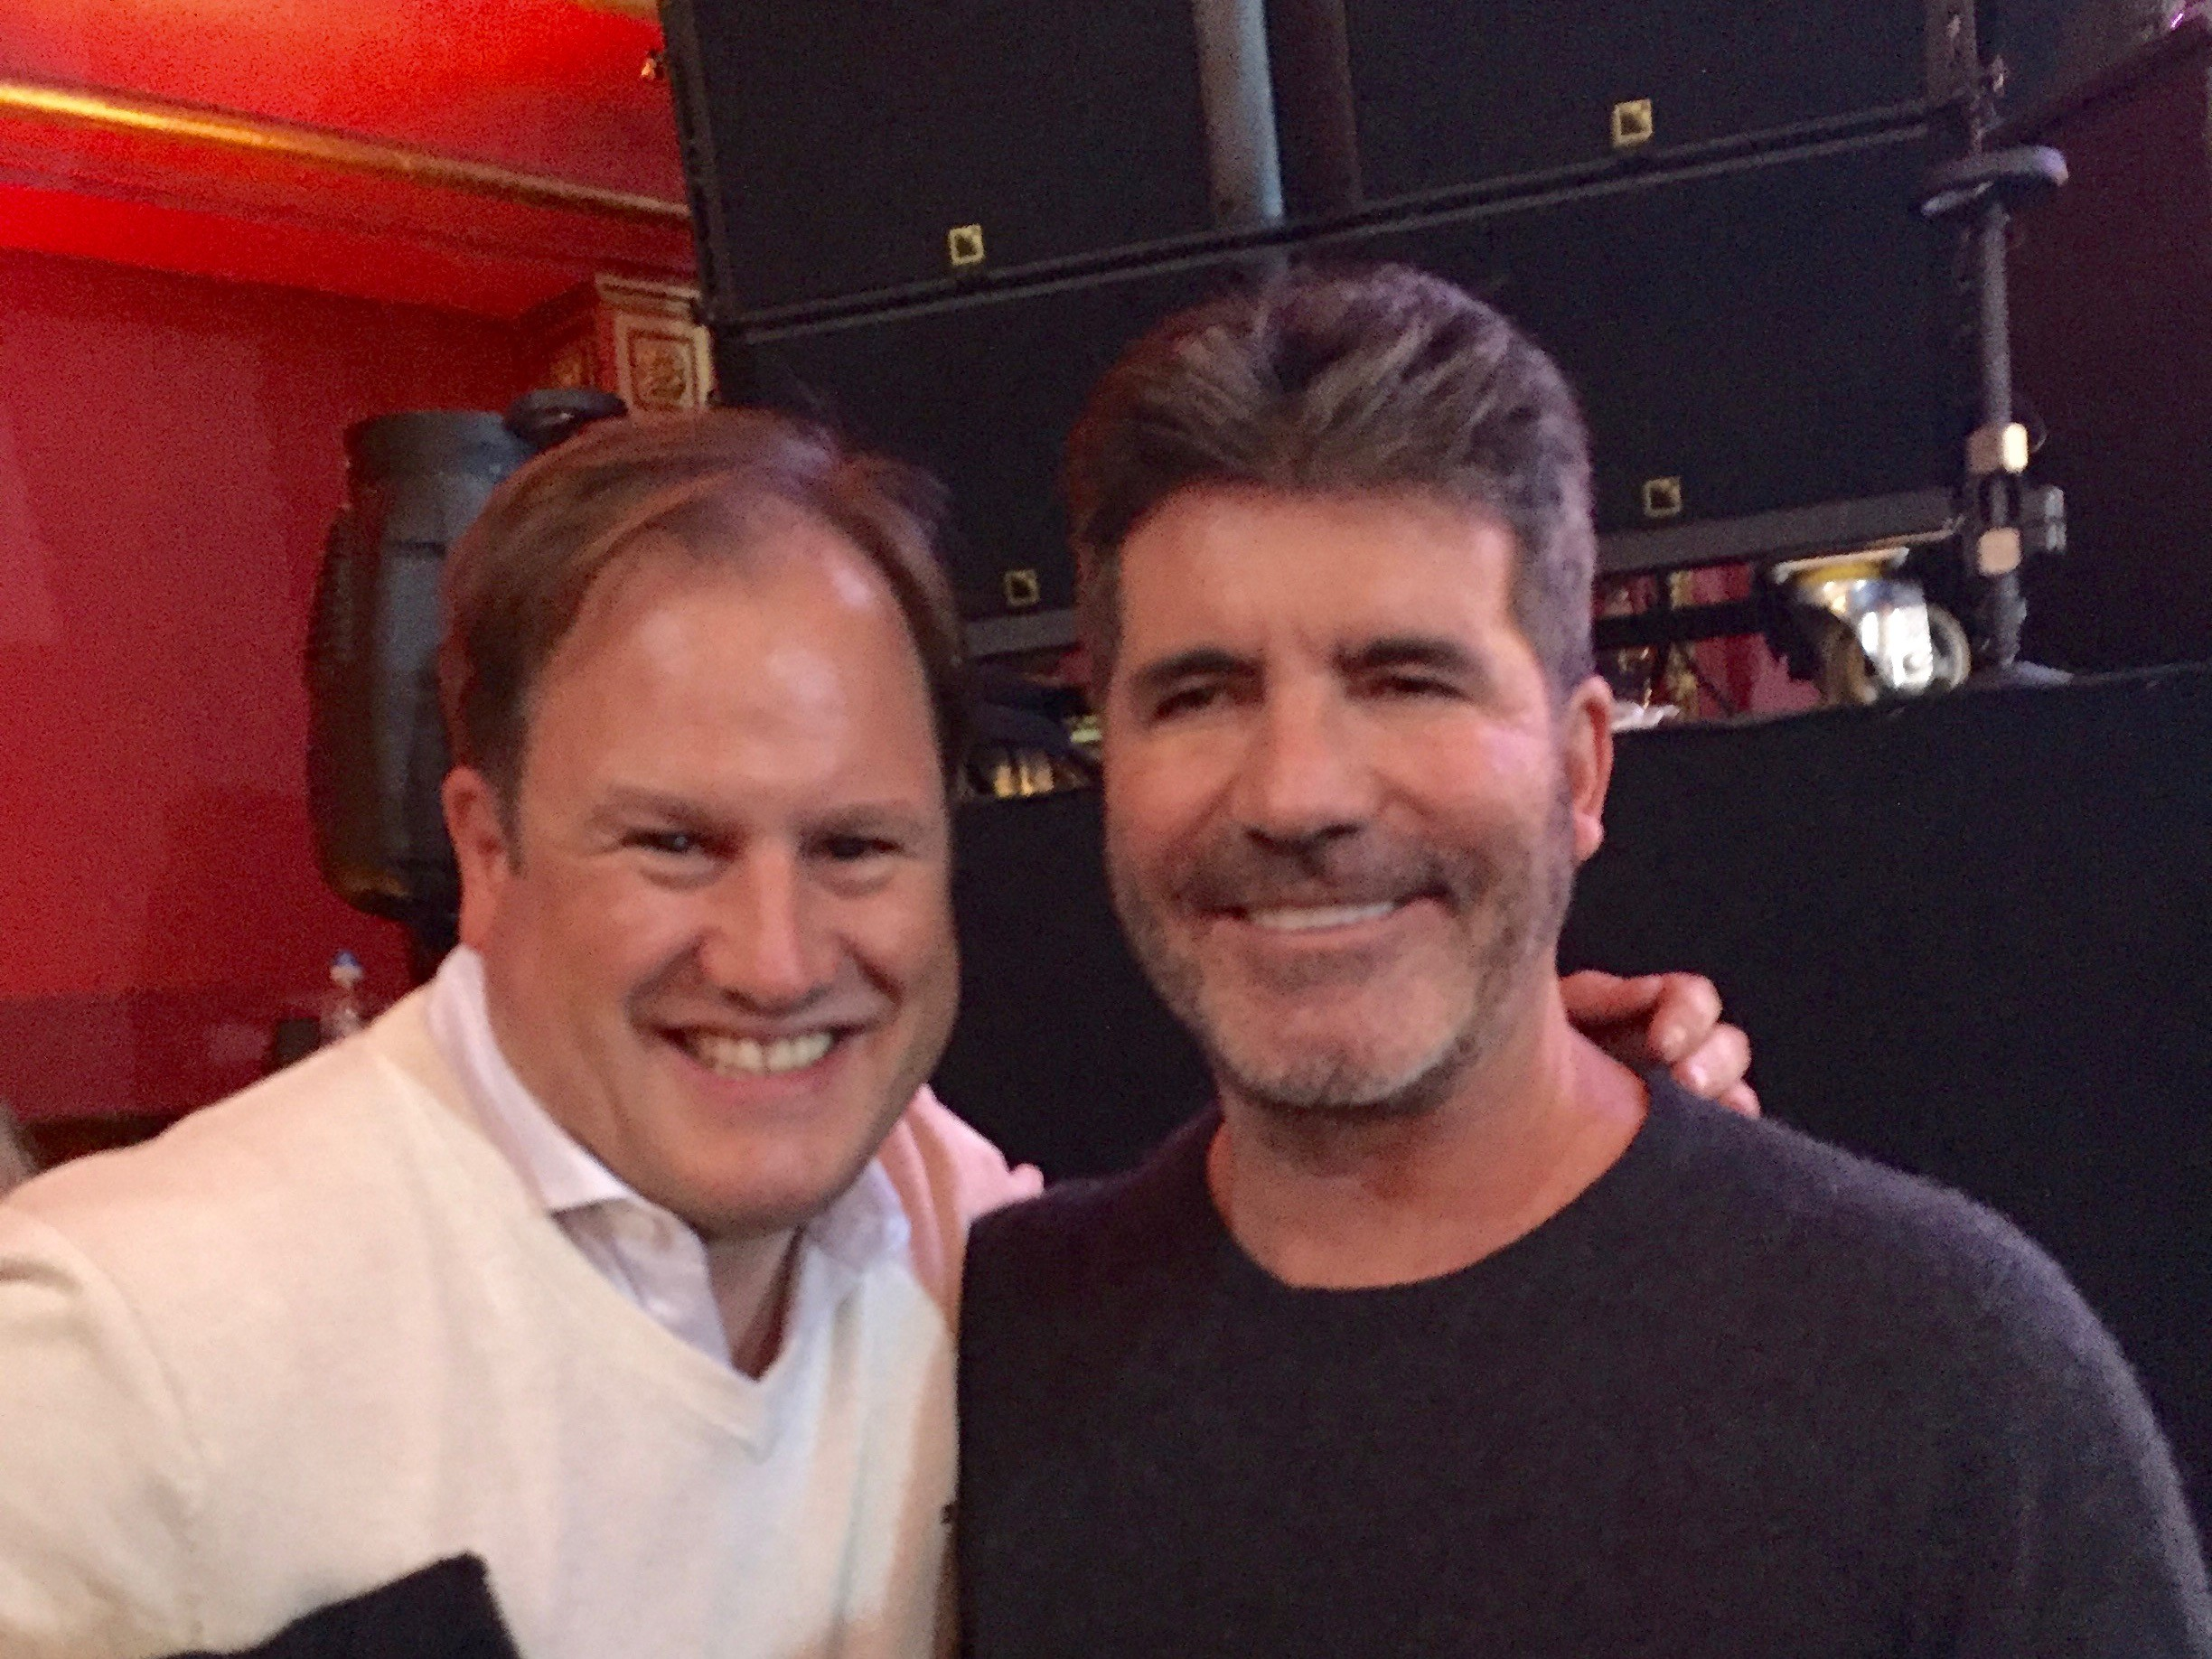 With Simon Cowell in London